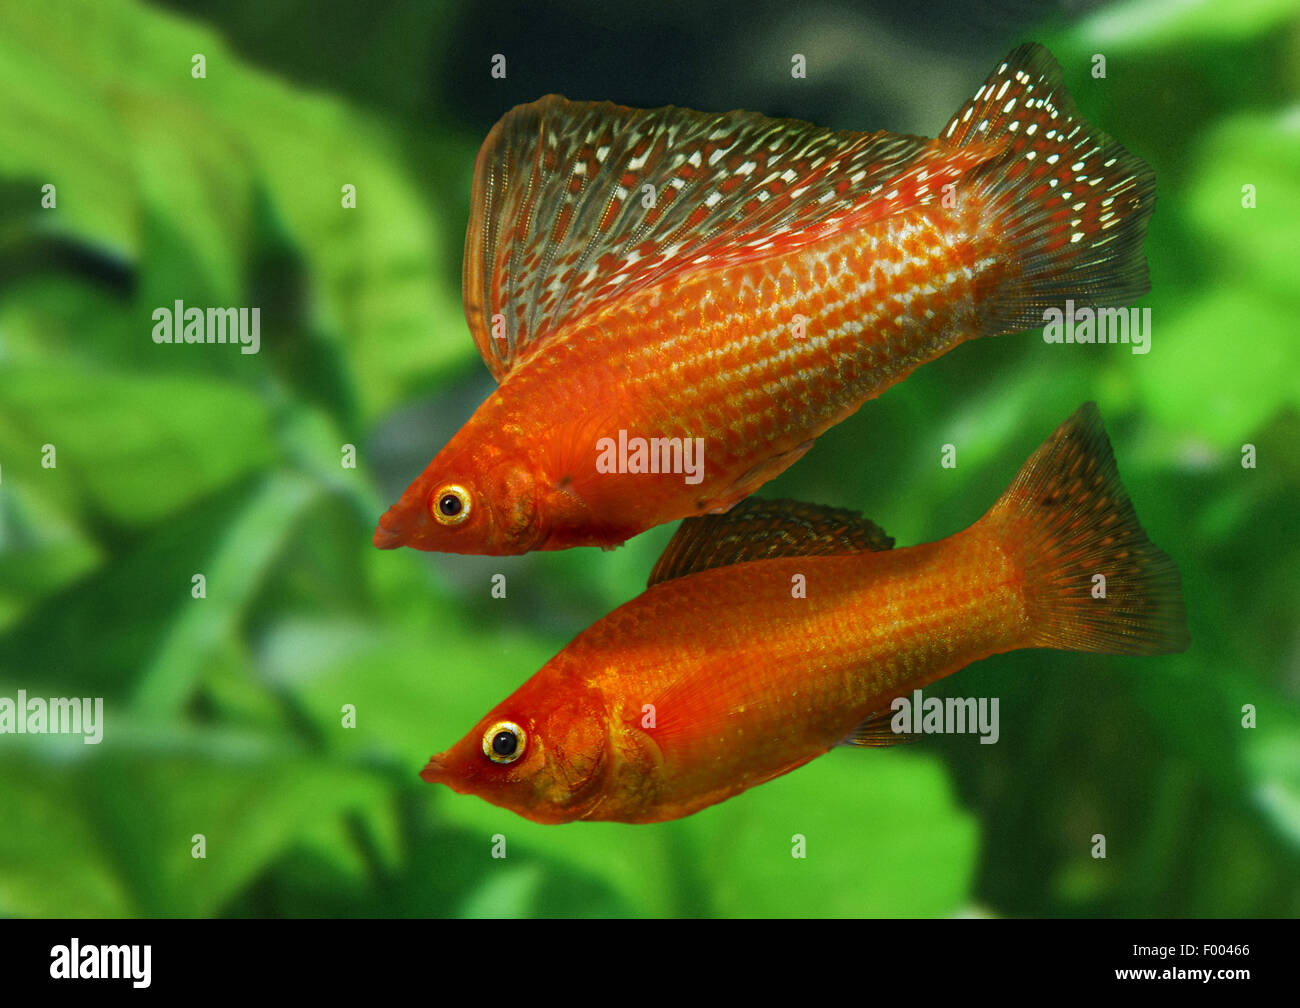 Giant sailfin molly, Sail-fin molly, Red sailfin molly, Yucatan Molly (Poecilia velifera), couple - Stock Image